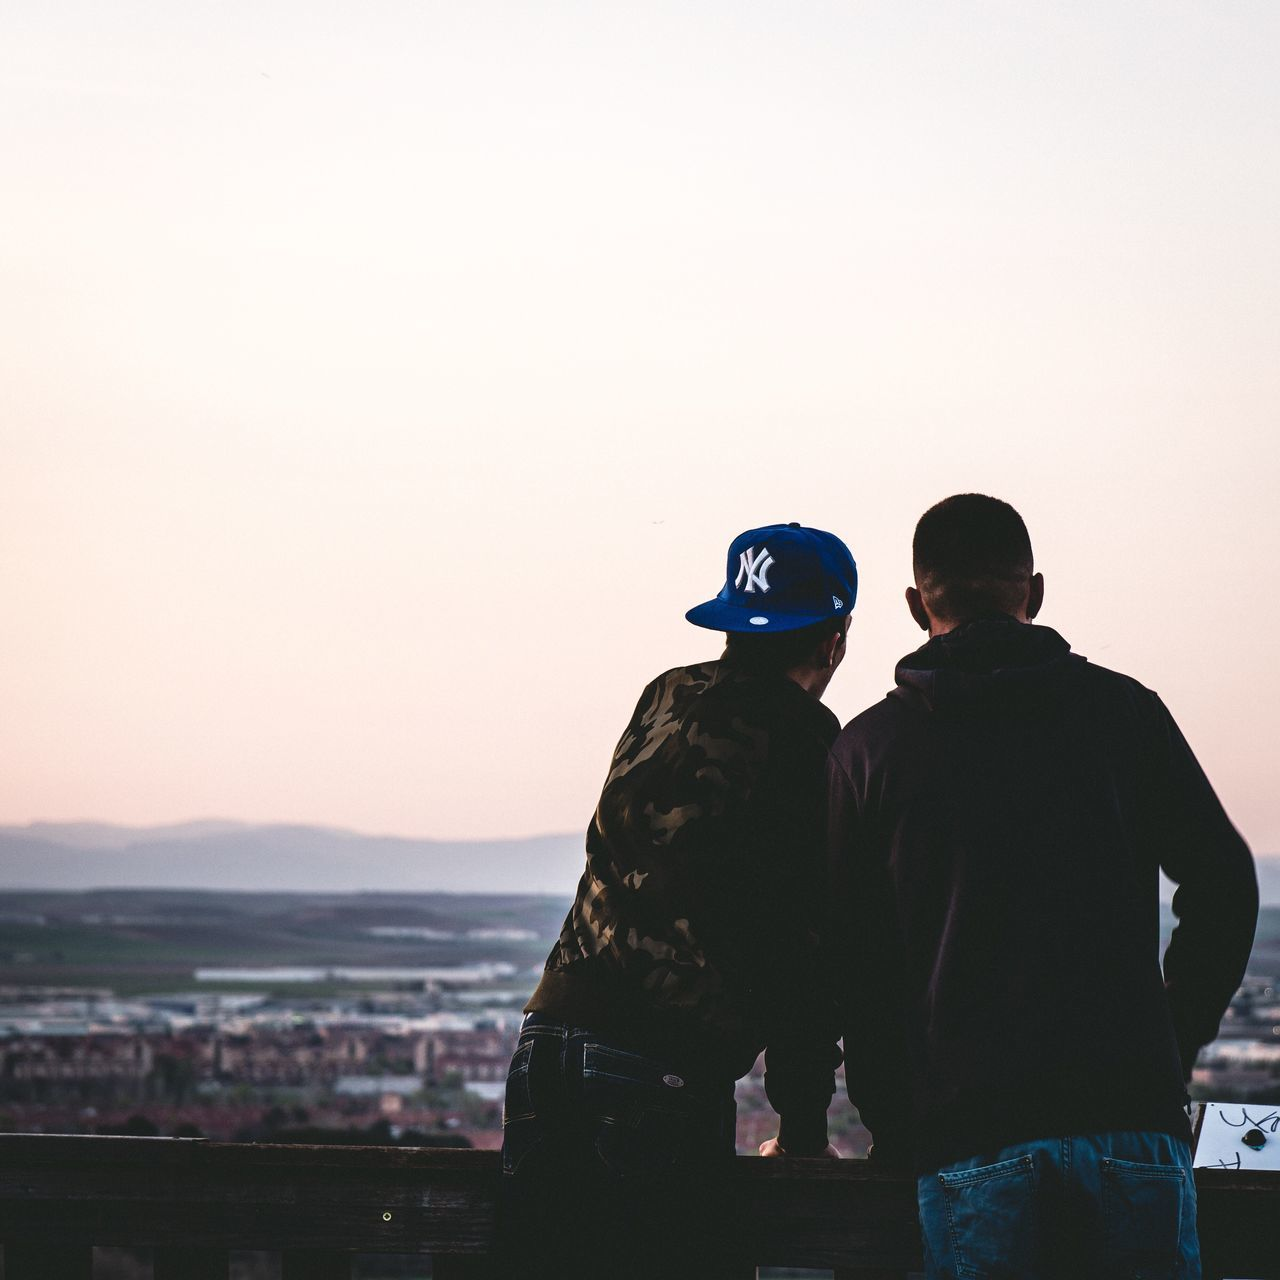 Real People Two People Togetherness Leisure Activity Men Clear Sky Sky Bonding Lifestyles Standing Outdoors Friendship Nature Day Sunset Millennial Pink